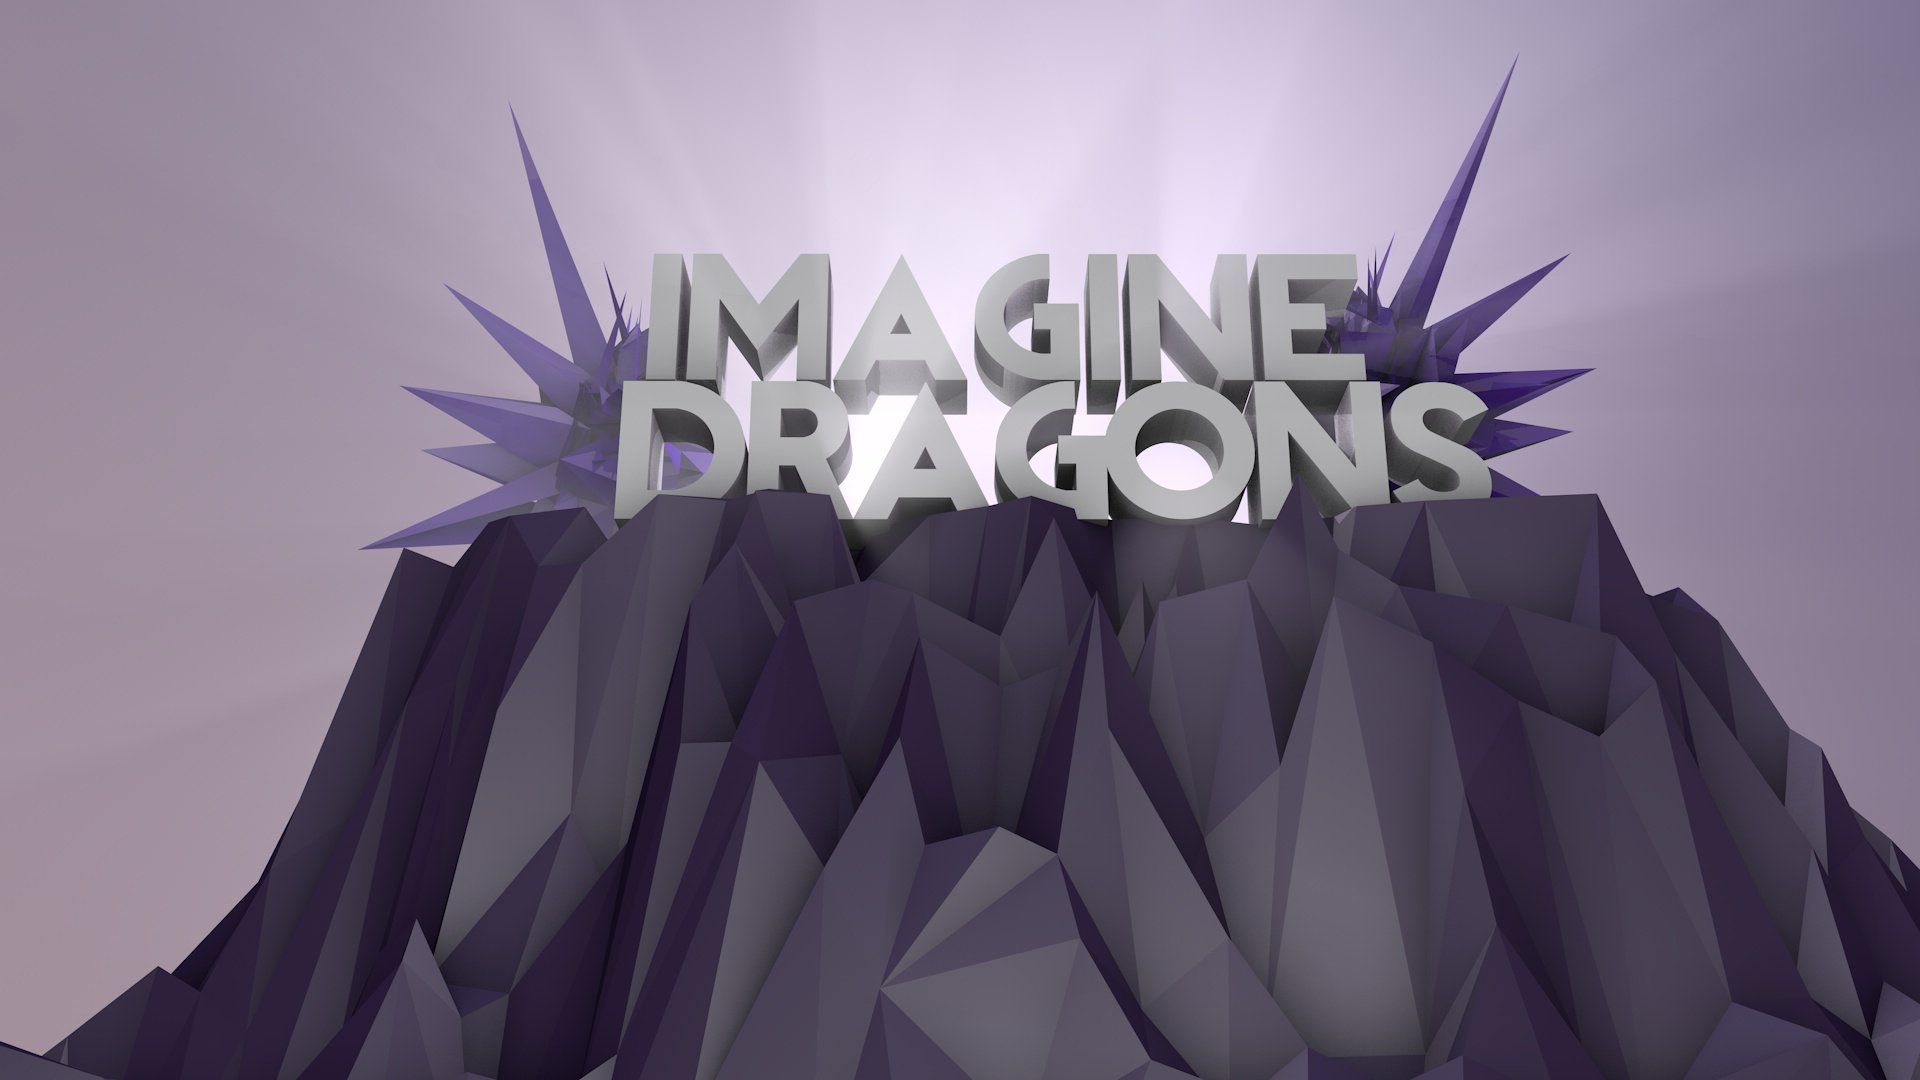 Imagine Dragons Fondo De Pantalla Hd Fondo De Escritorio